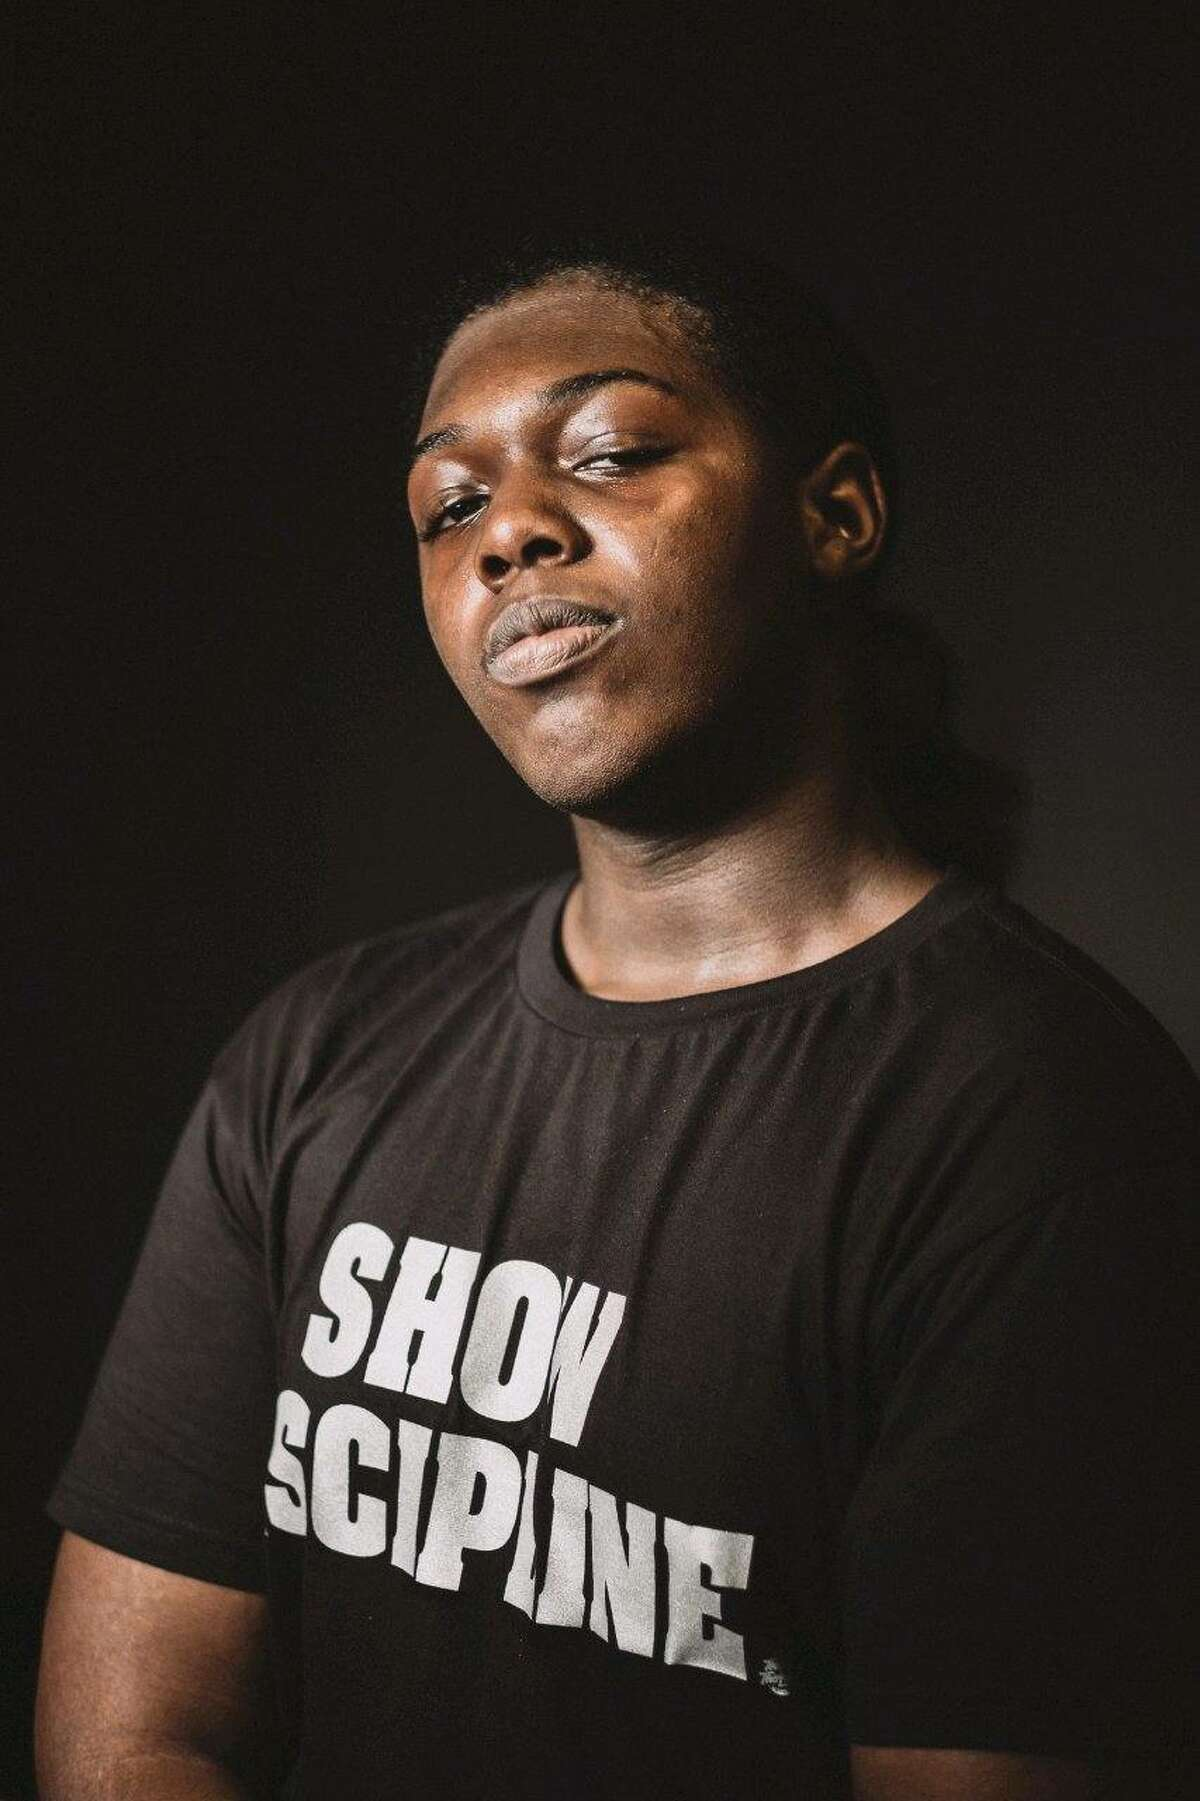 ZaniefWashington aspires to become a professional musician, photographer and artist. His first live performance was at Rocktoberfestin 2019, where he performed his original song,